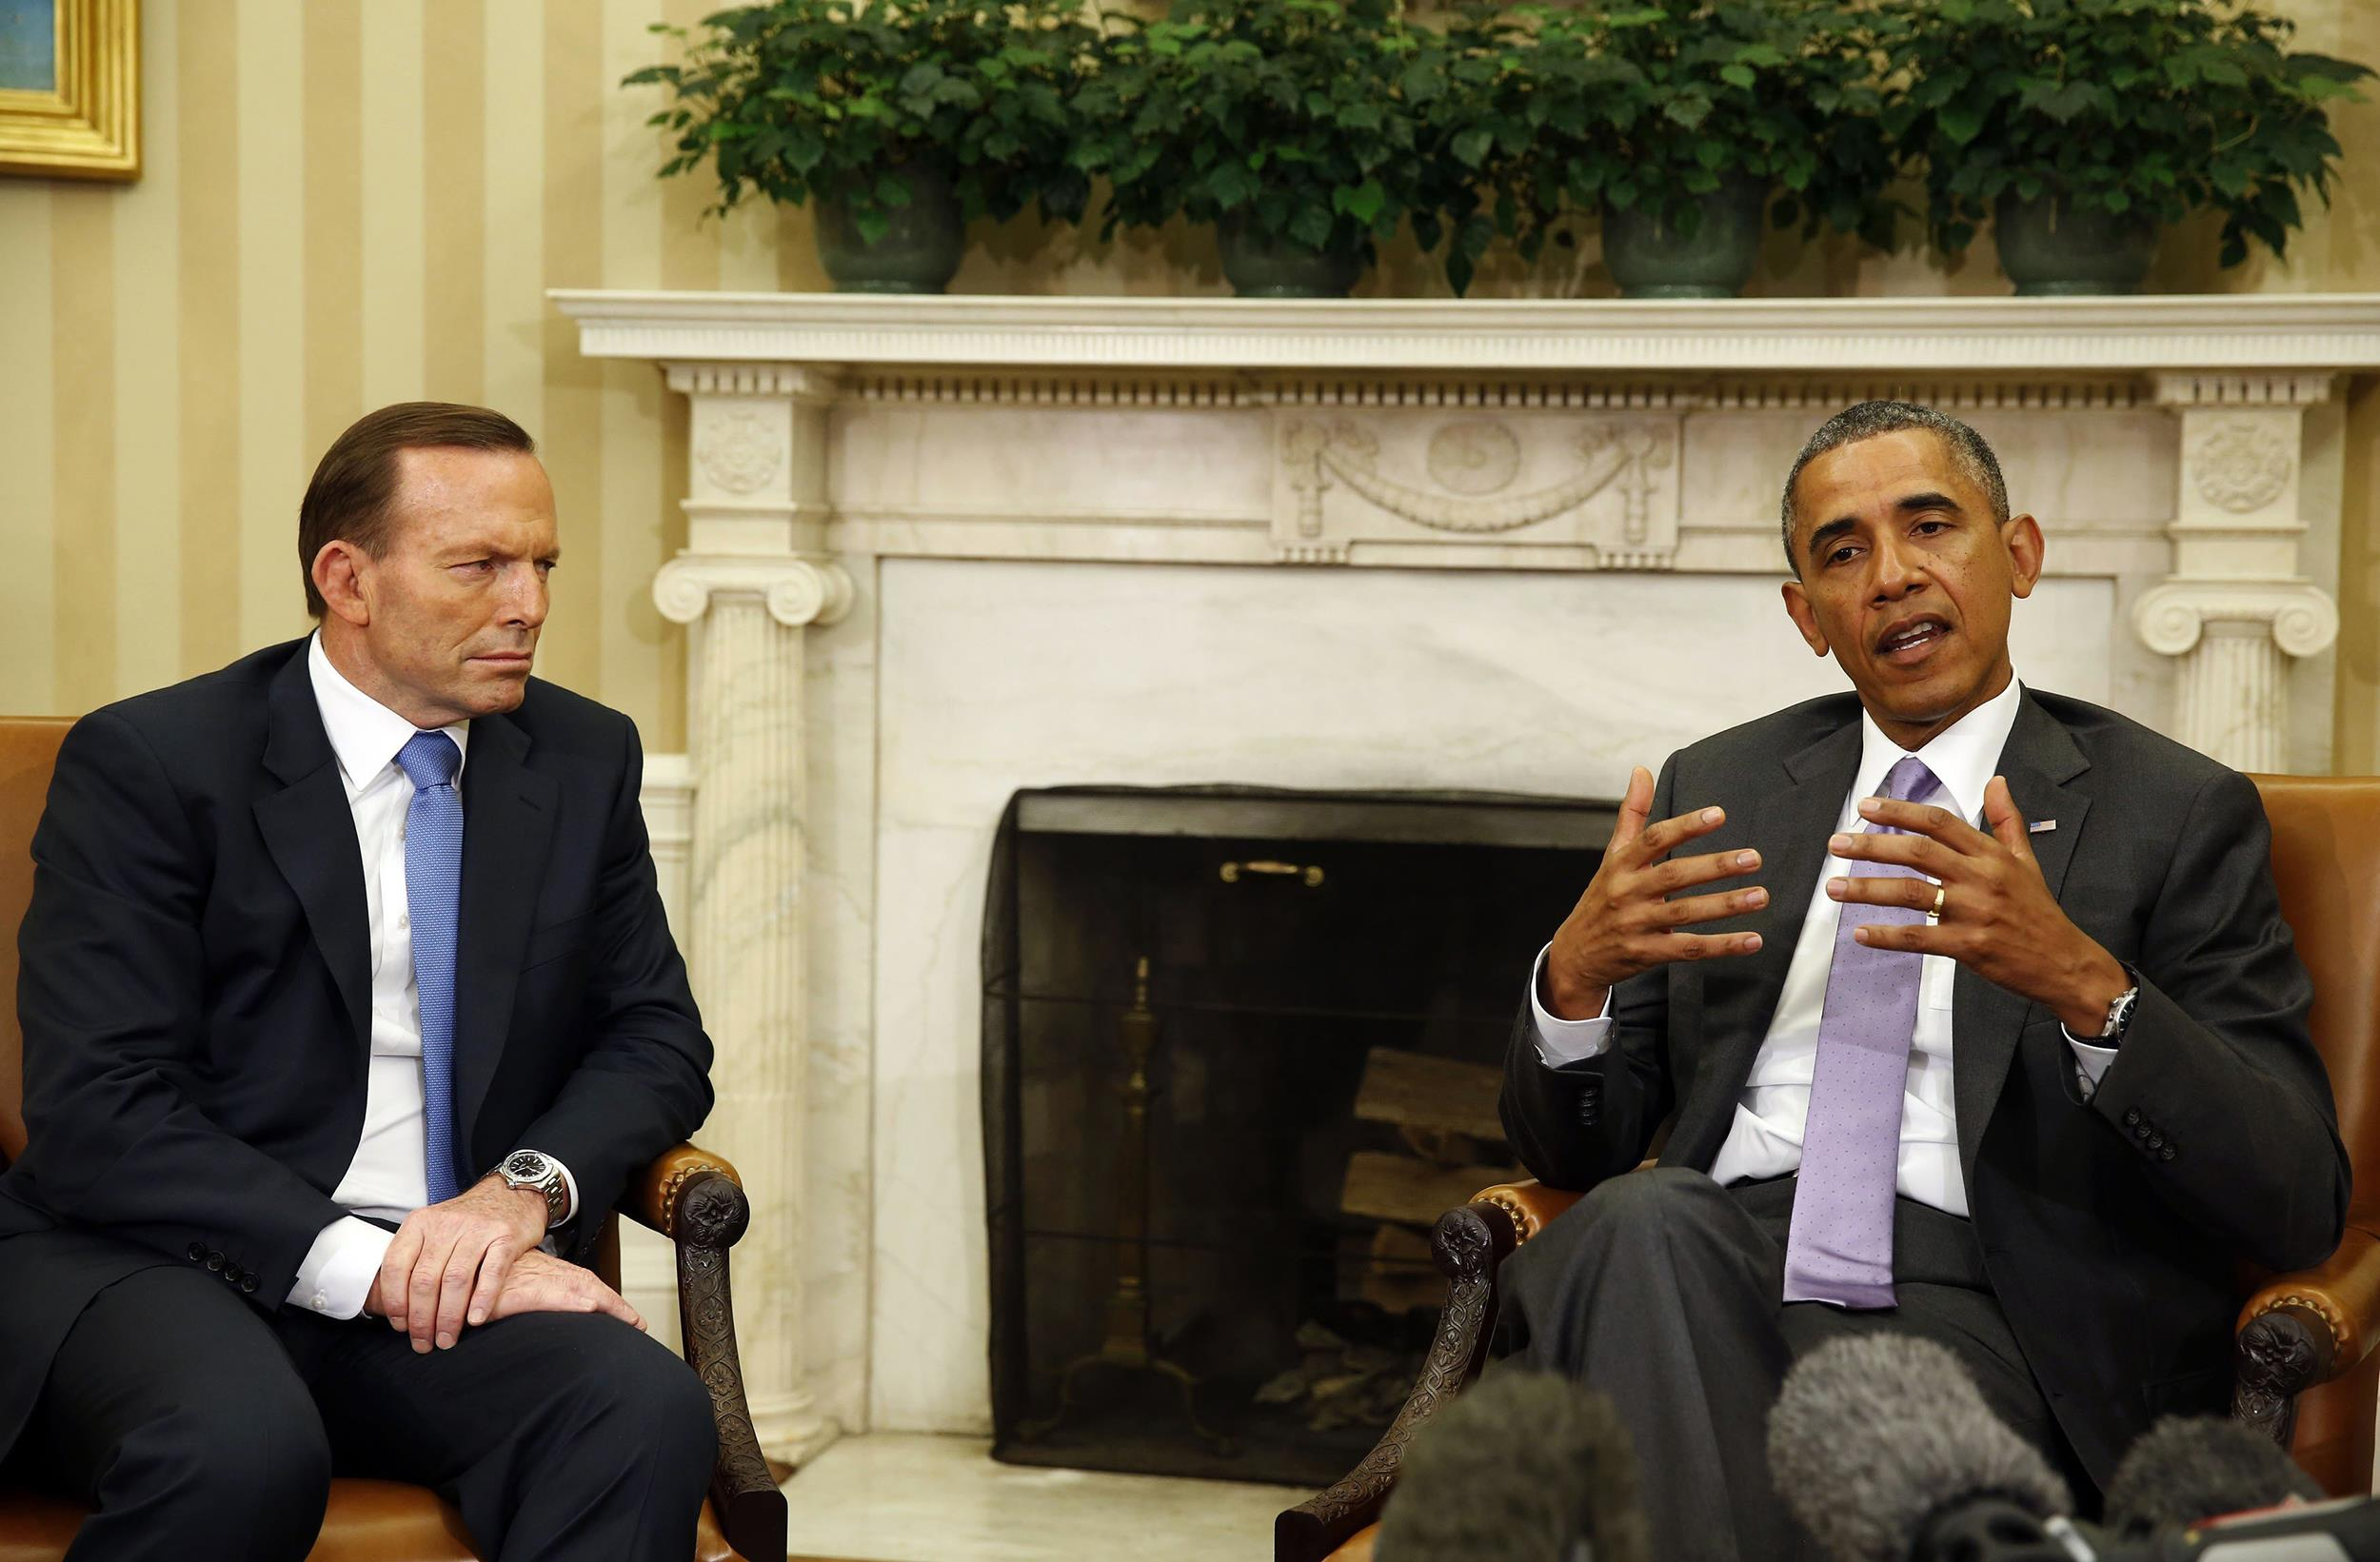 Image: U.S. President Obama speaks next to Australian PM Abbott at the White House in Washington